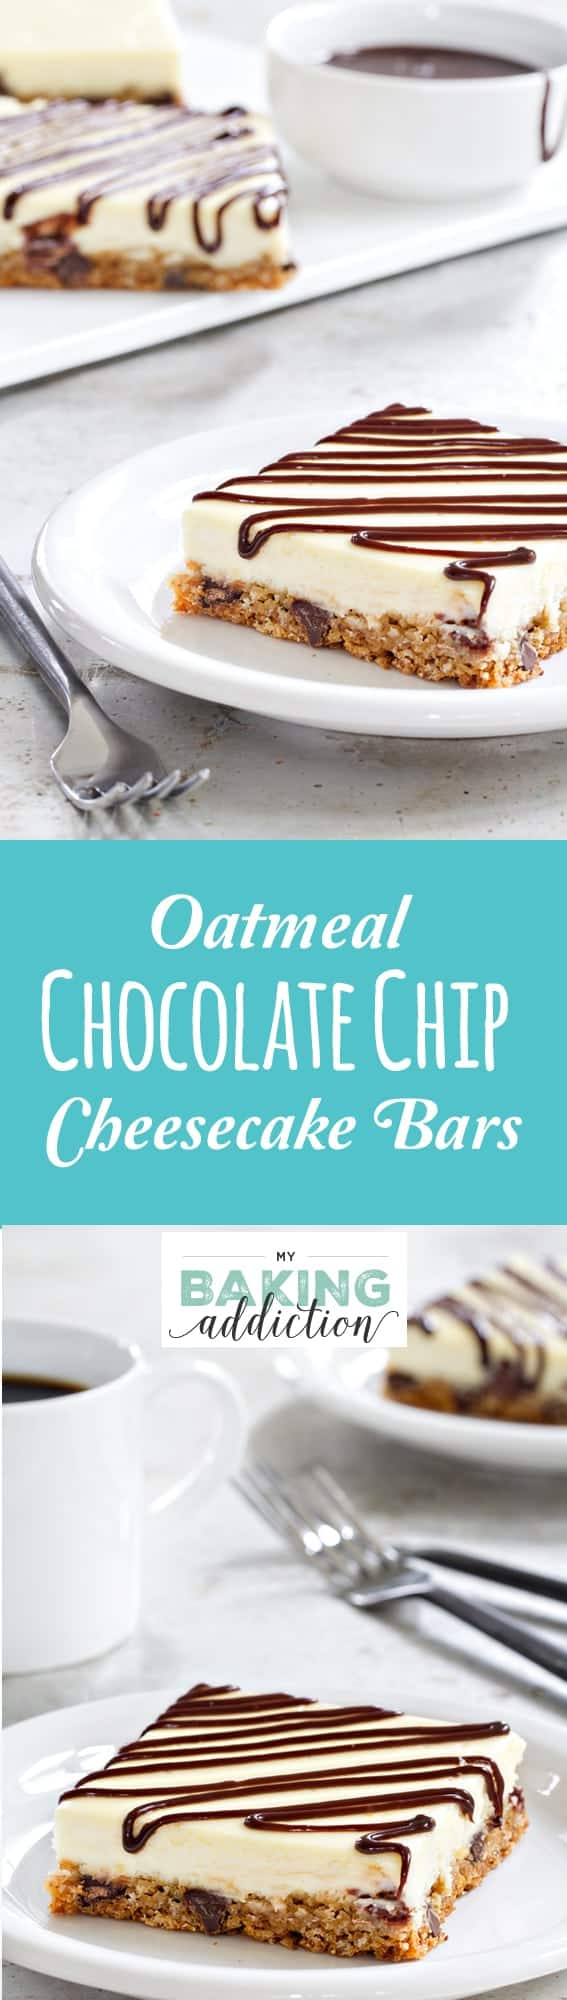 This Oatmeal Chocolate Chip Cheesecake Bars recipe is super simple to throw together and sure to be a huge hit for just about any occasion!